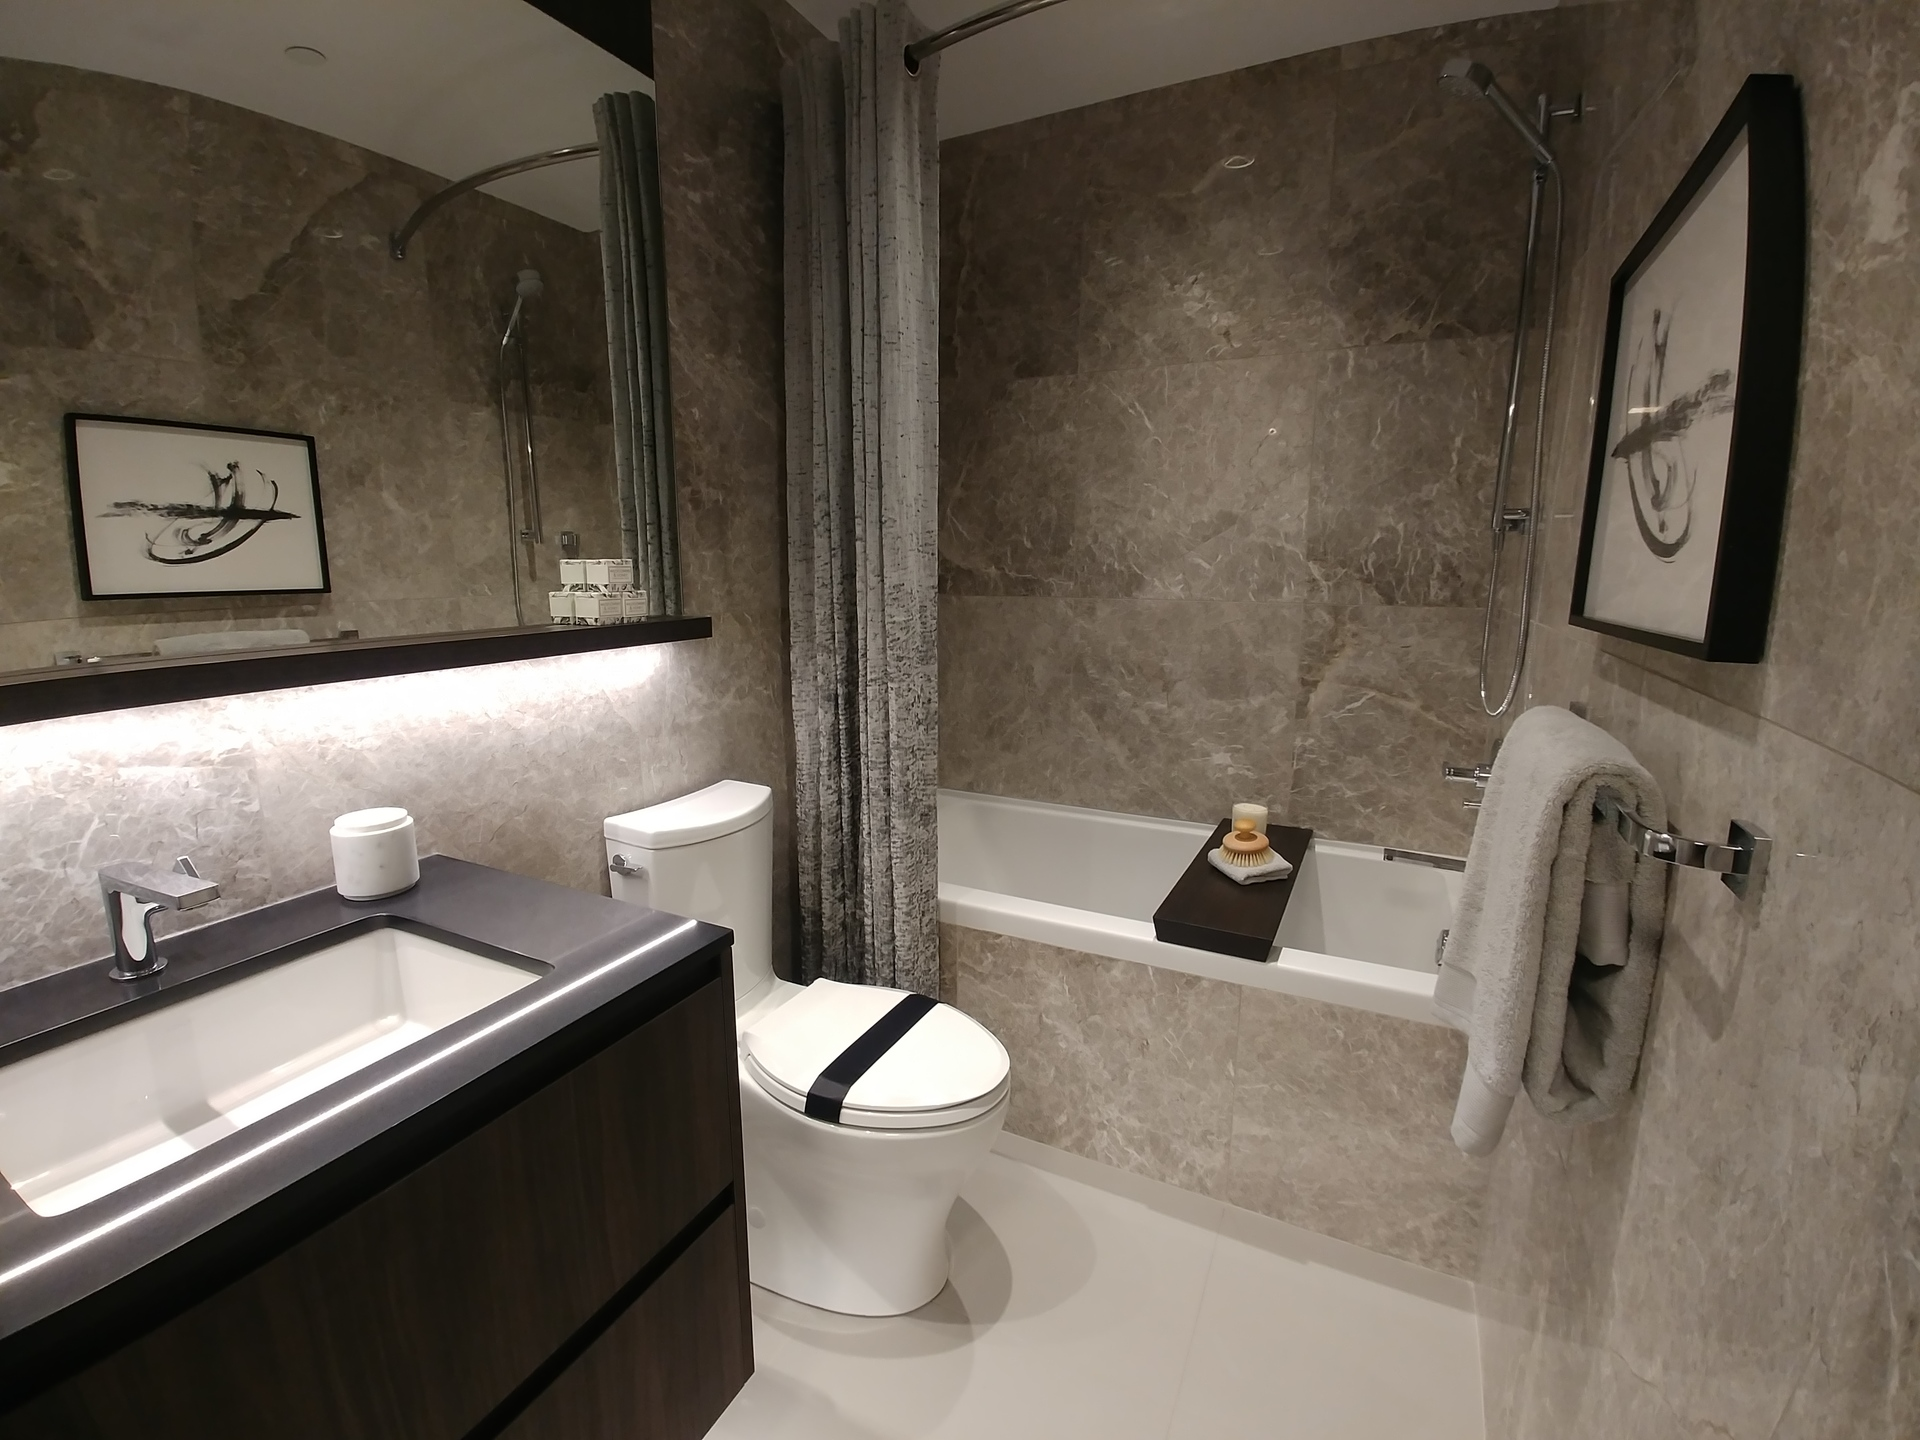 highline-main-bathroom-with-fully-tiled-walls-in-dark-scheme at Highline (6811 Sussex Street, Metrotown, Burnaby South)